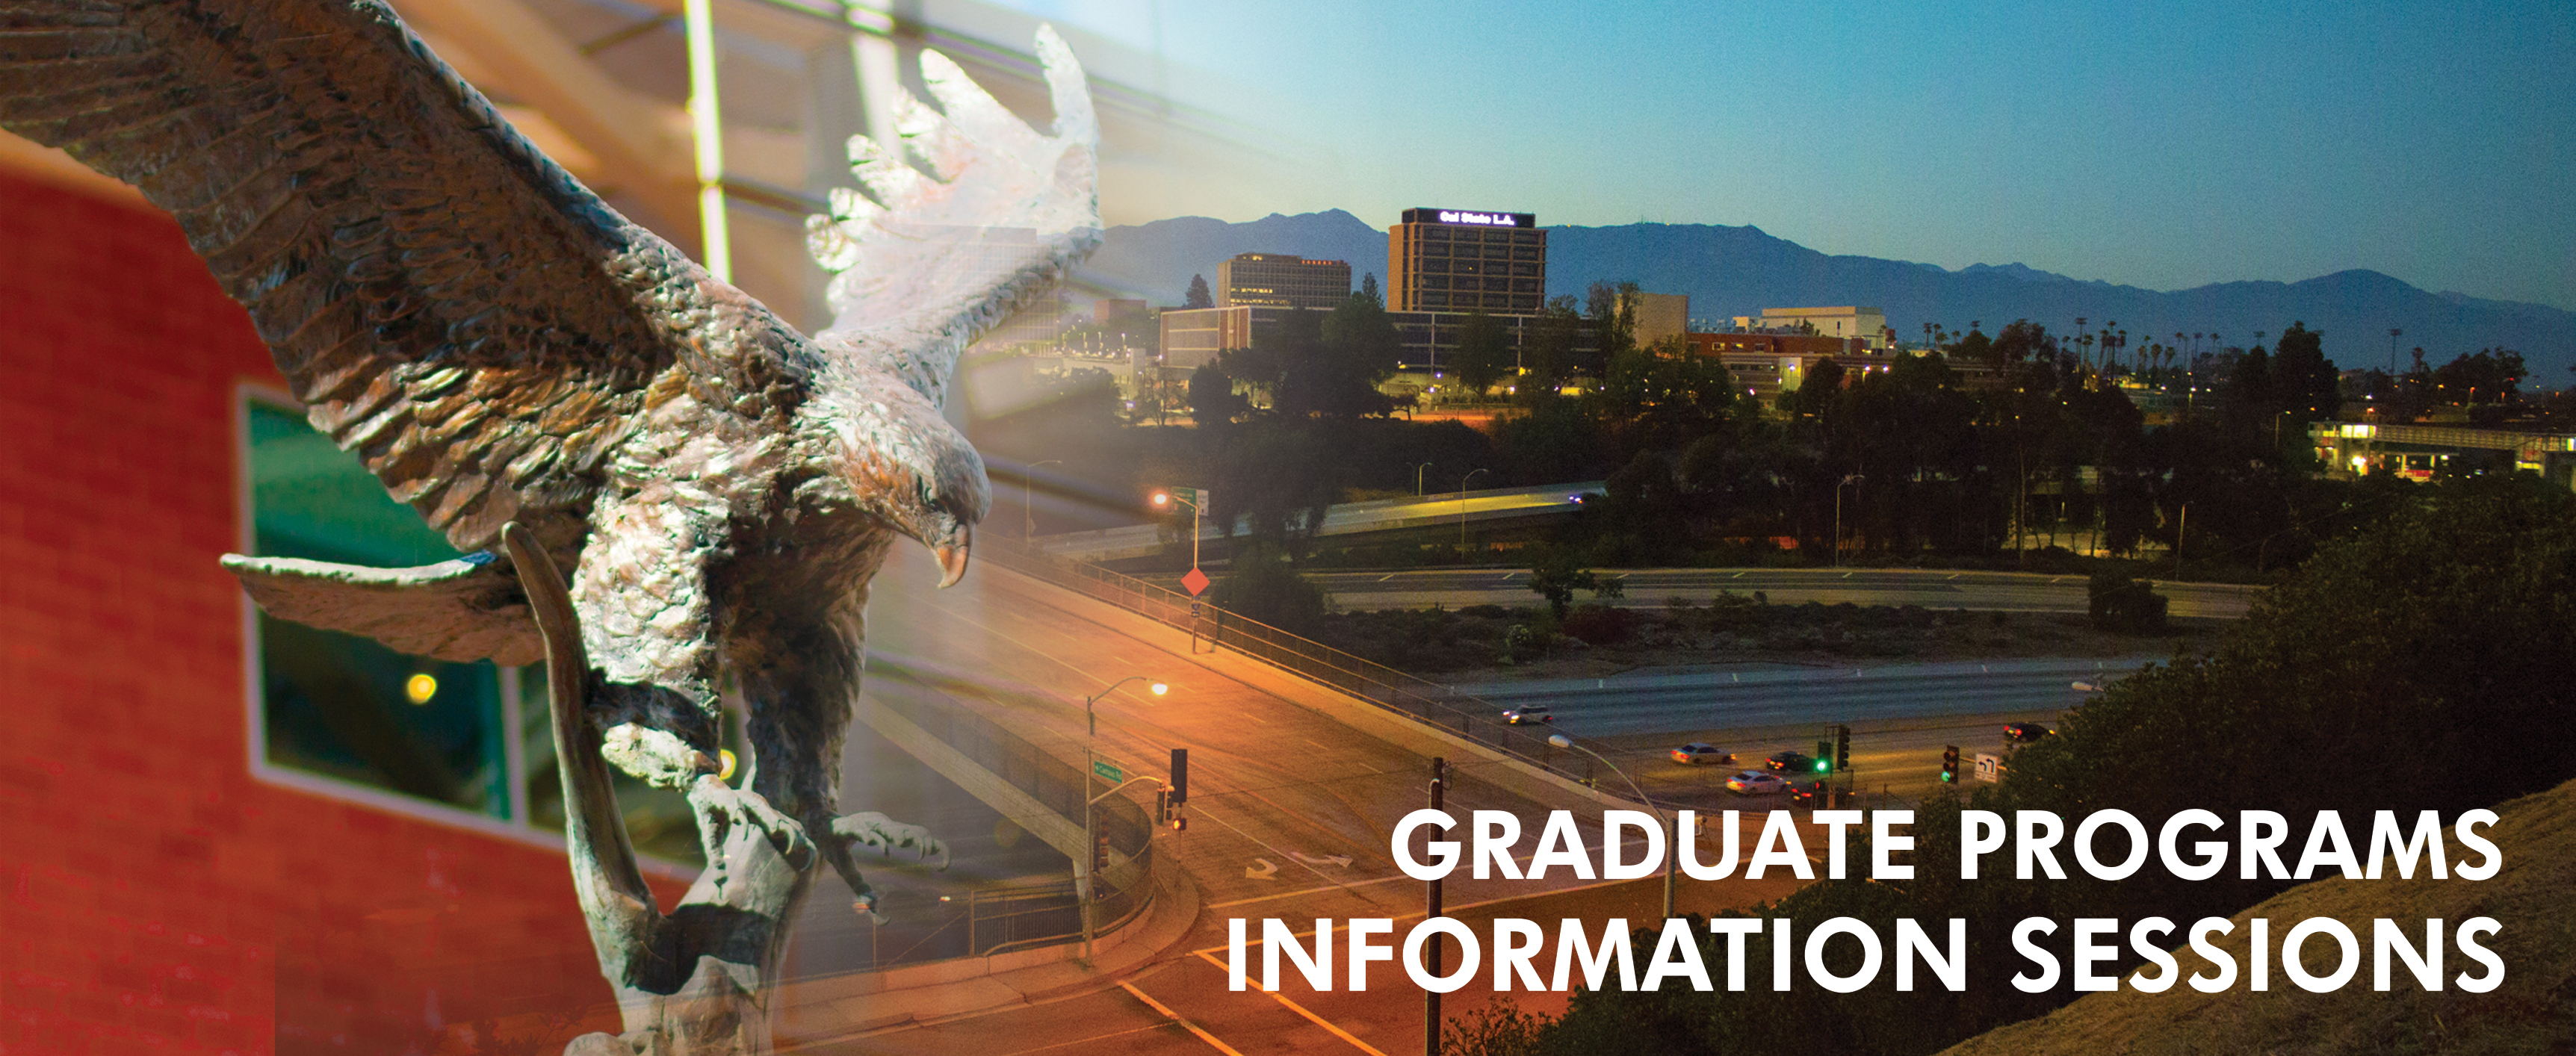 Graduate Program Information Session